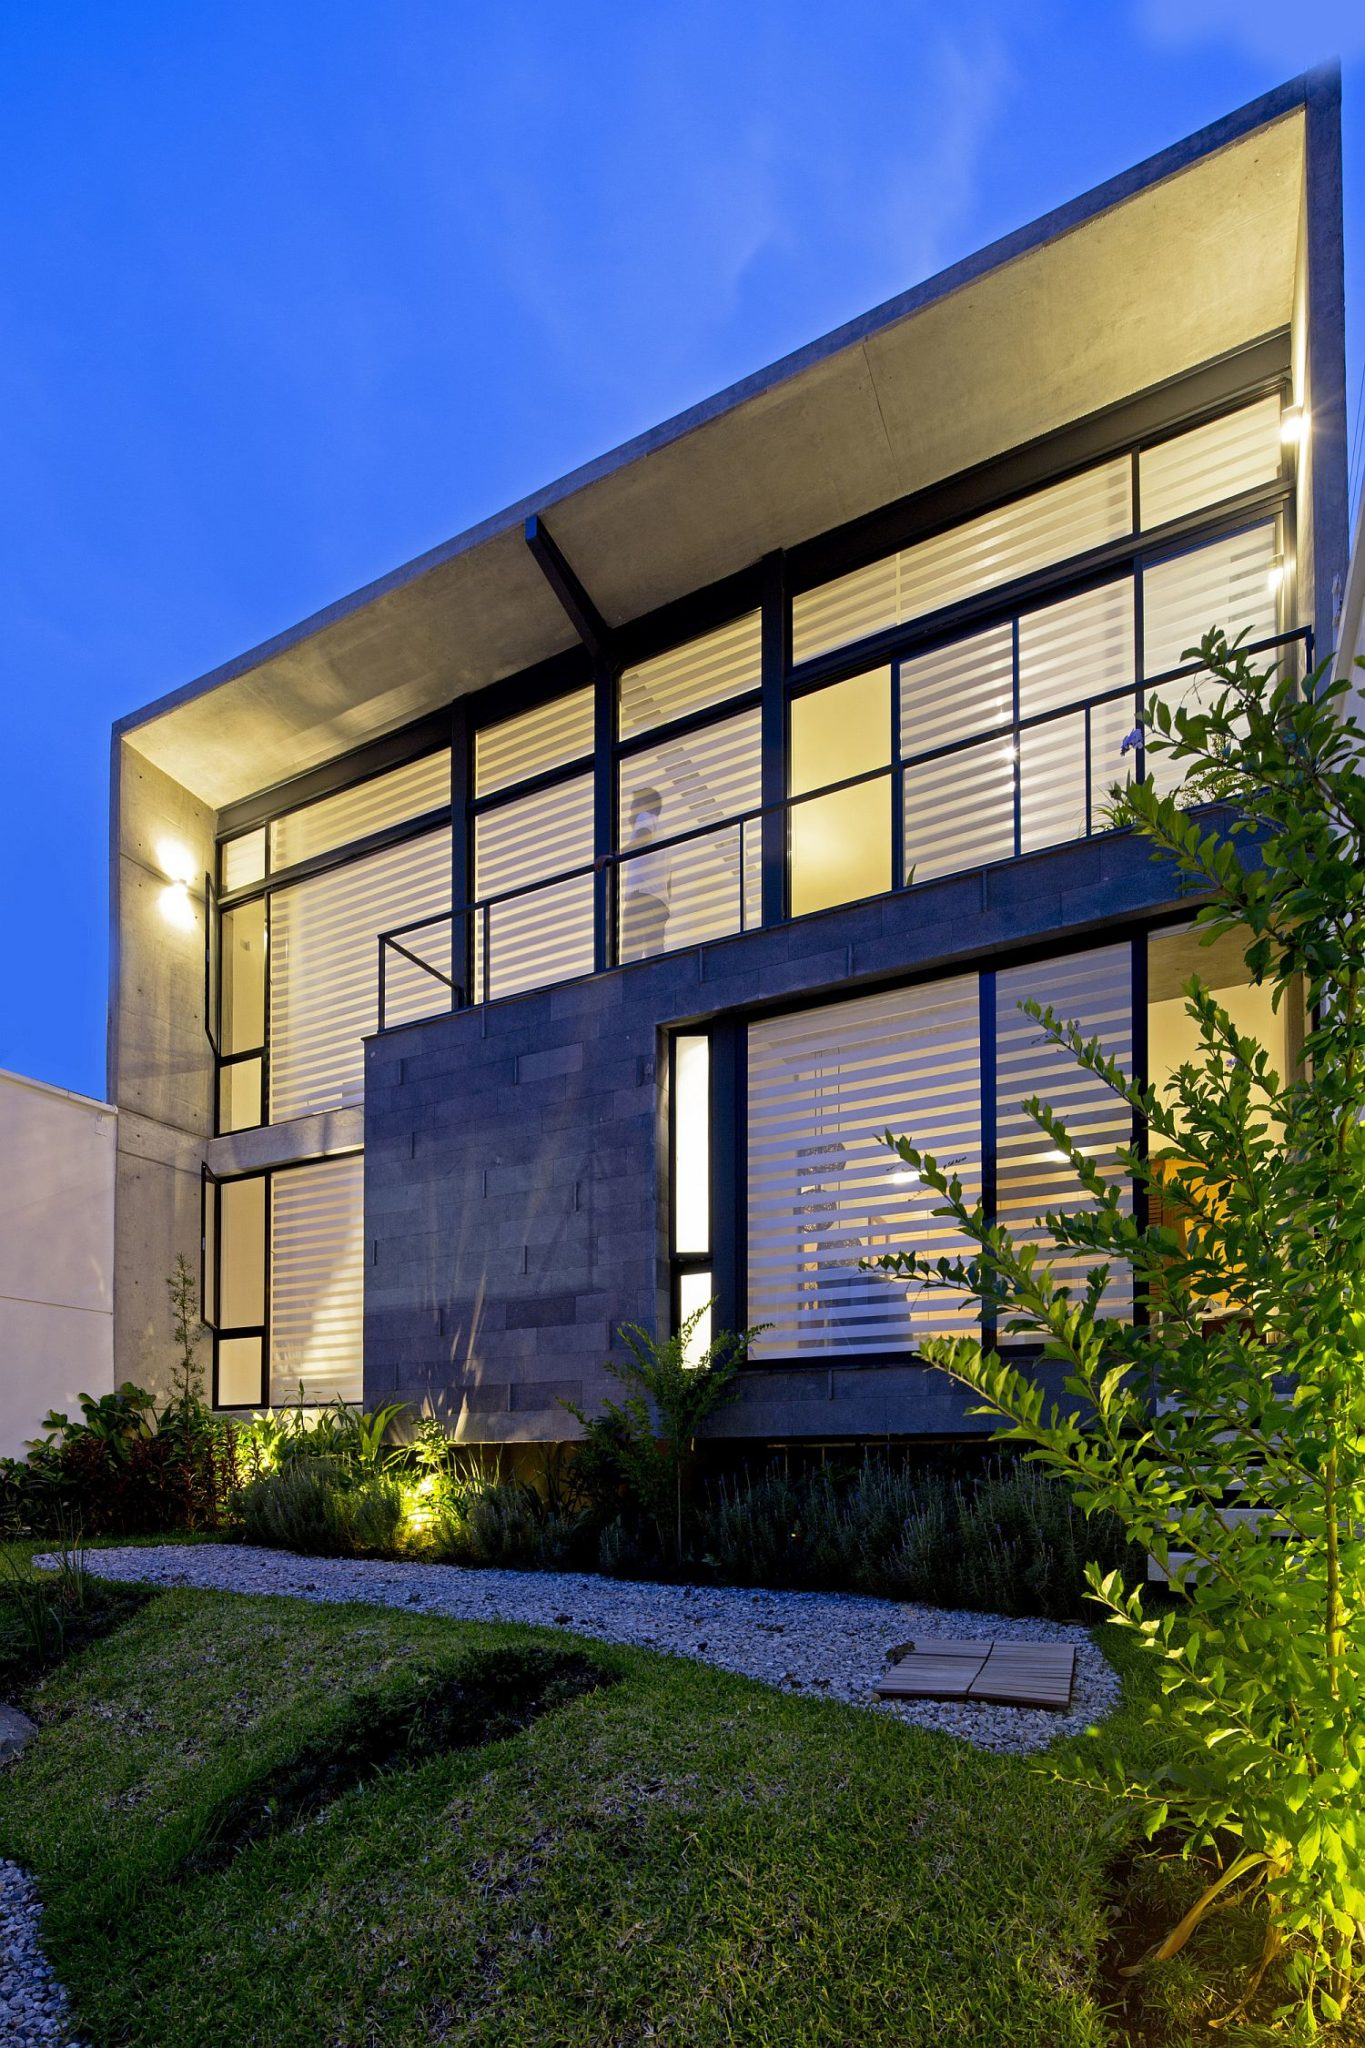 Wood stone, glass and concrete give the home a unique facade